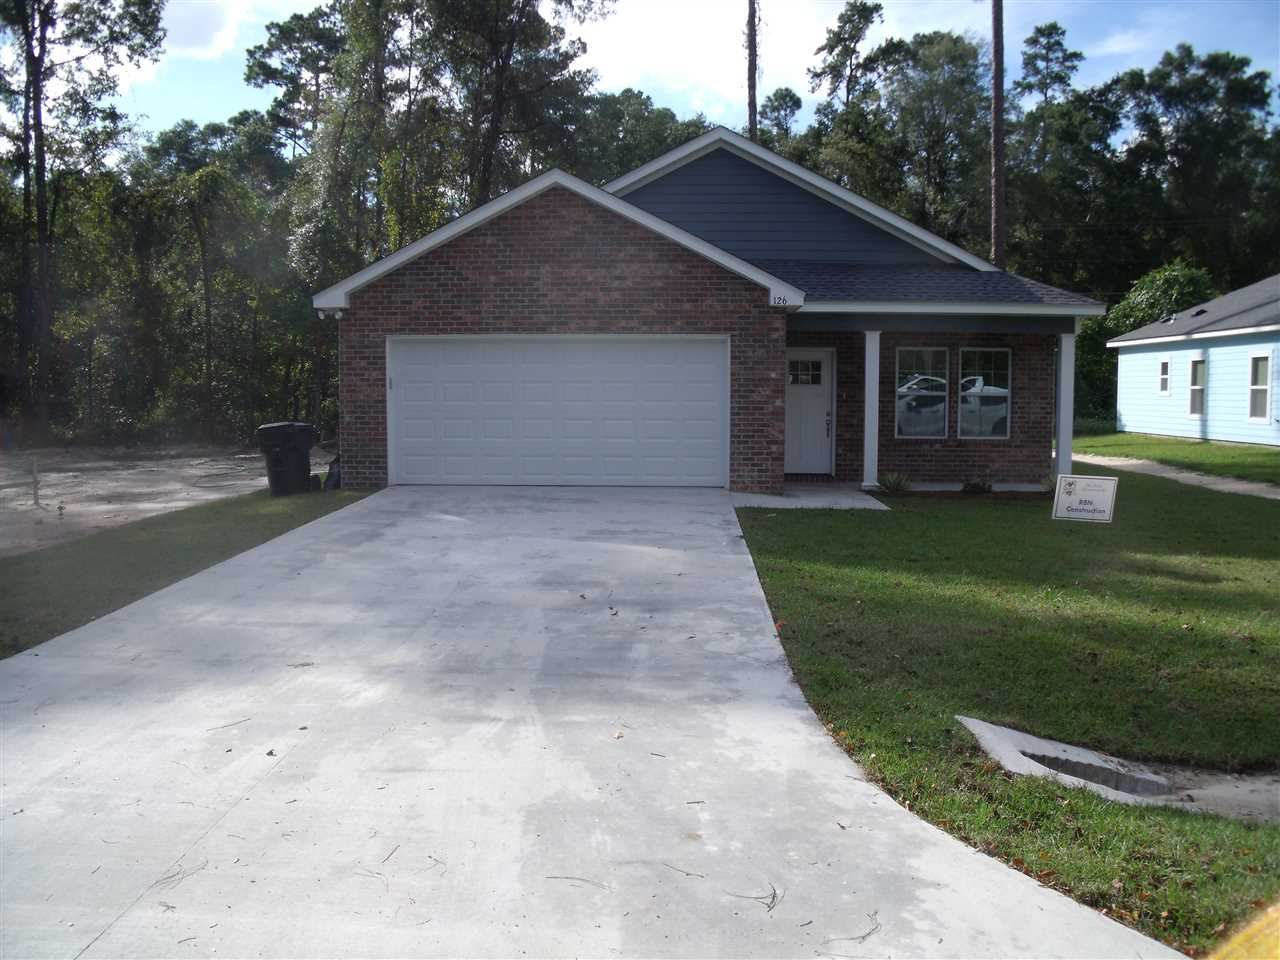 xx Mohave Road, Crawfordville, FL 32327 - MLS#: 325619